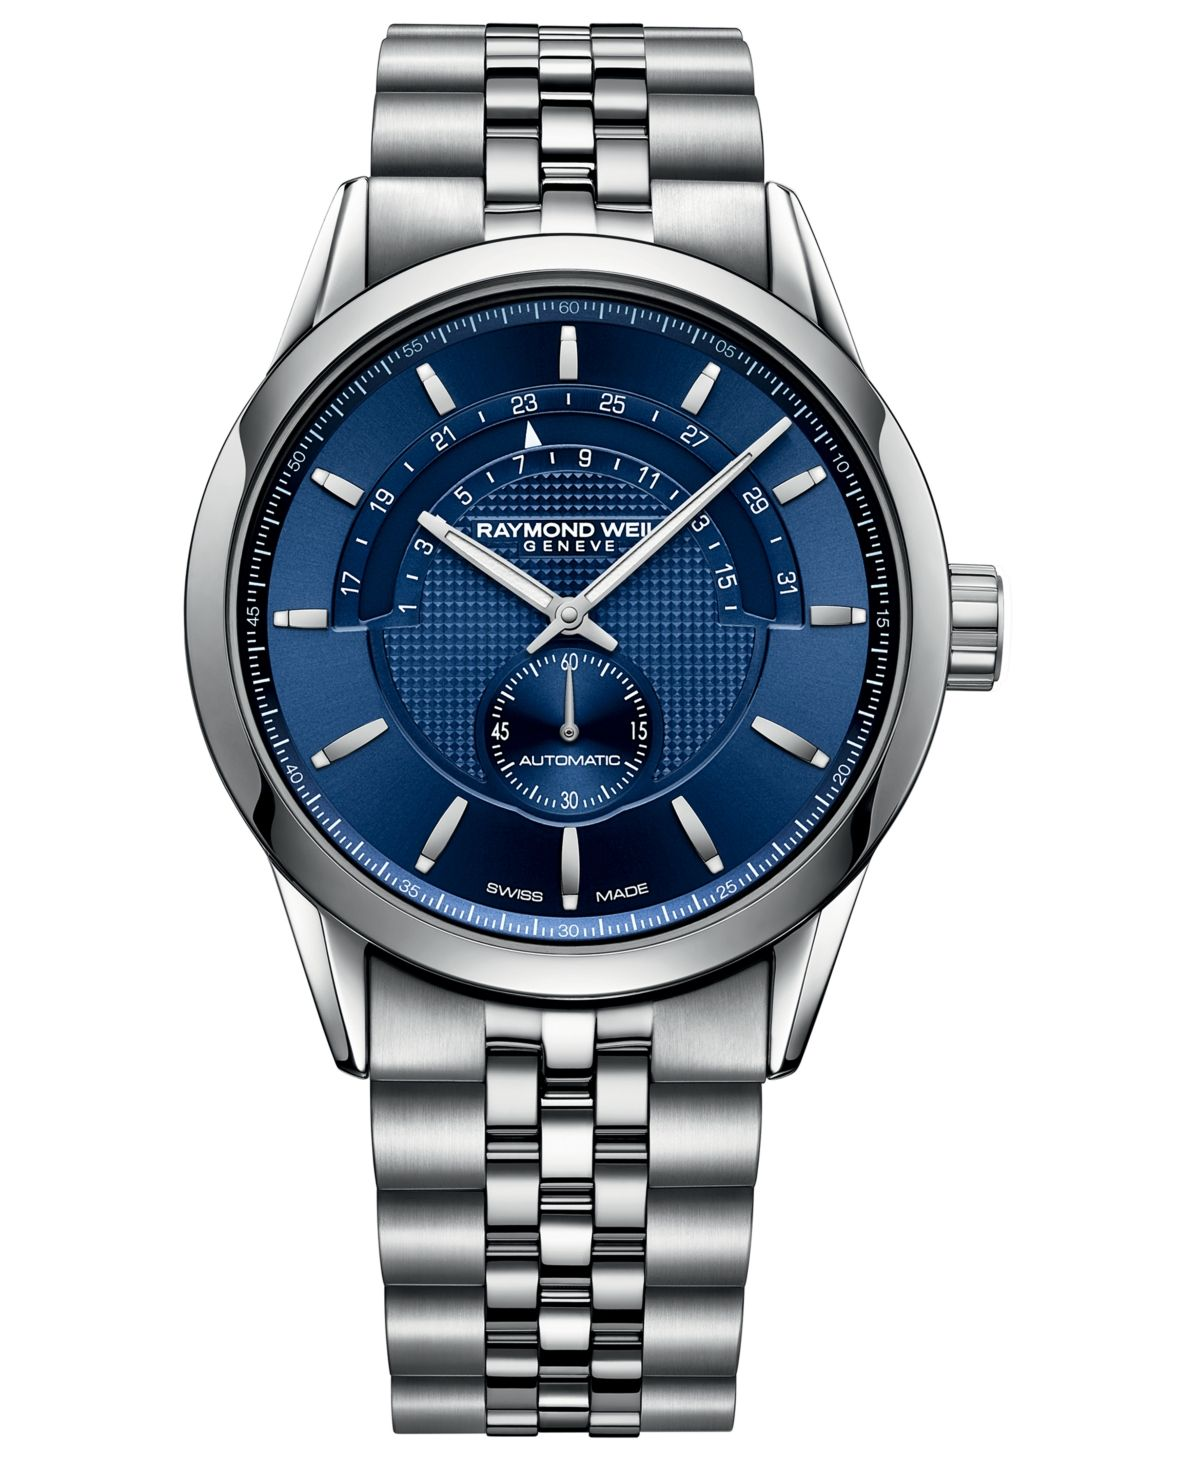 Raymond Weil Men's Swiss Automatic Freelancer Stainless Steel Bracelet Watch 42mm - Stainless Steel #stainlesssteelrolex